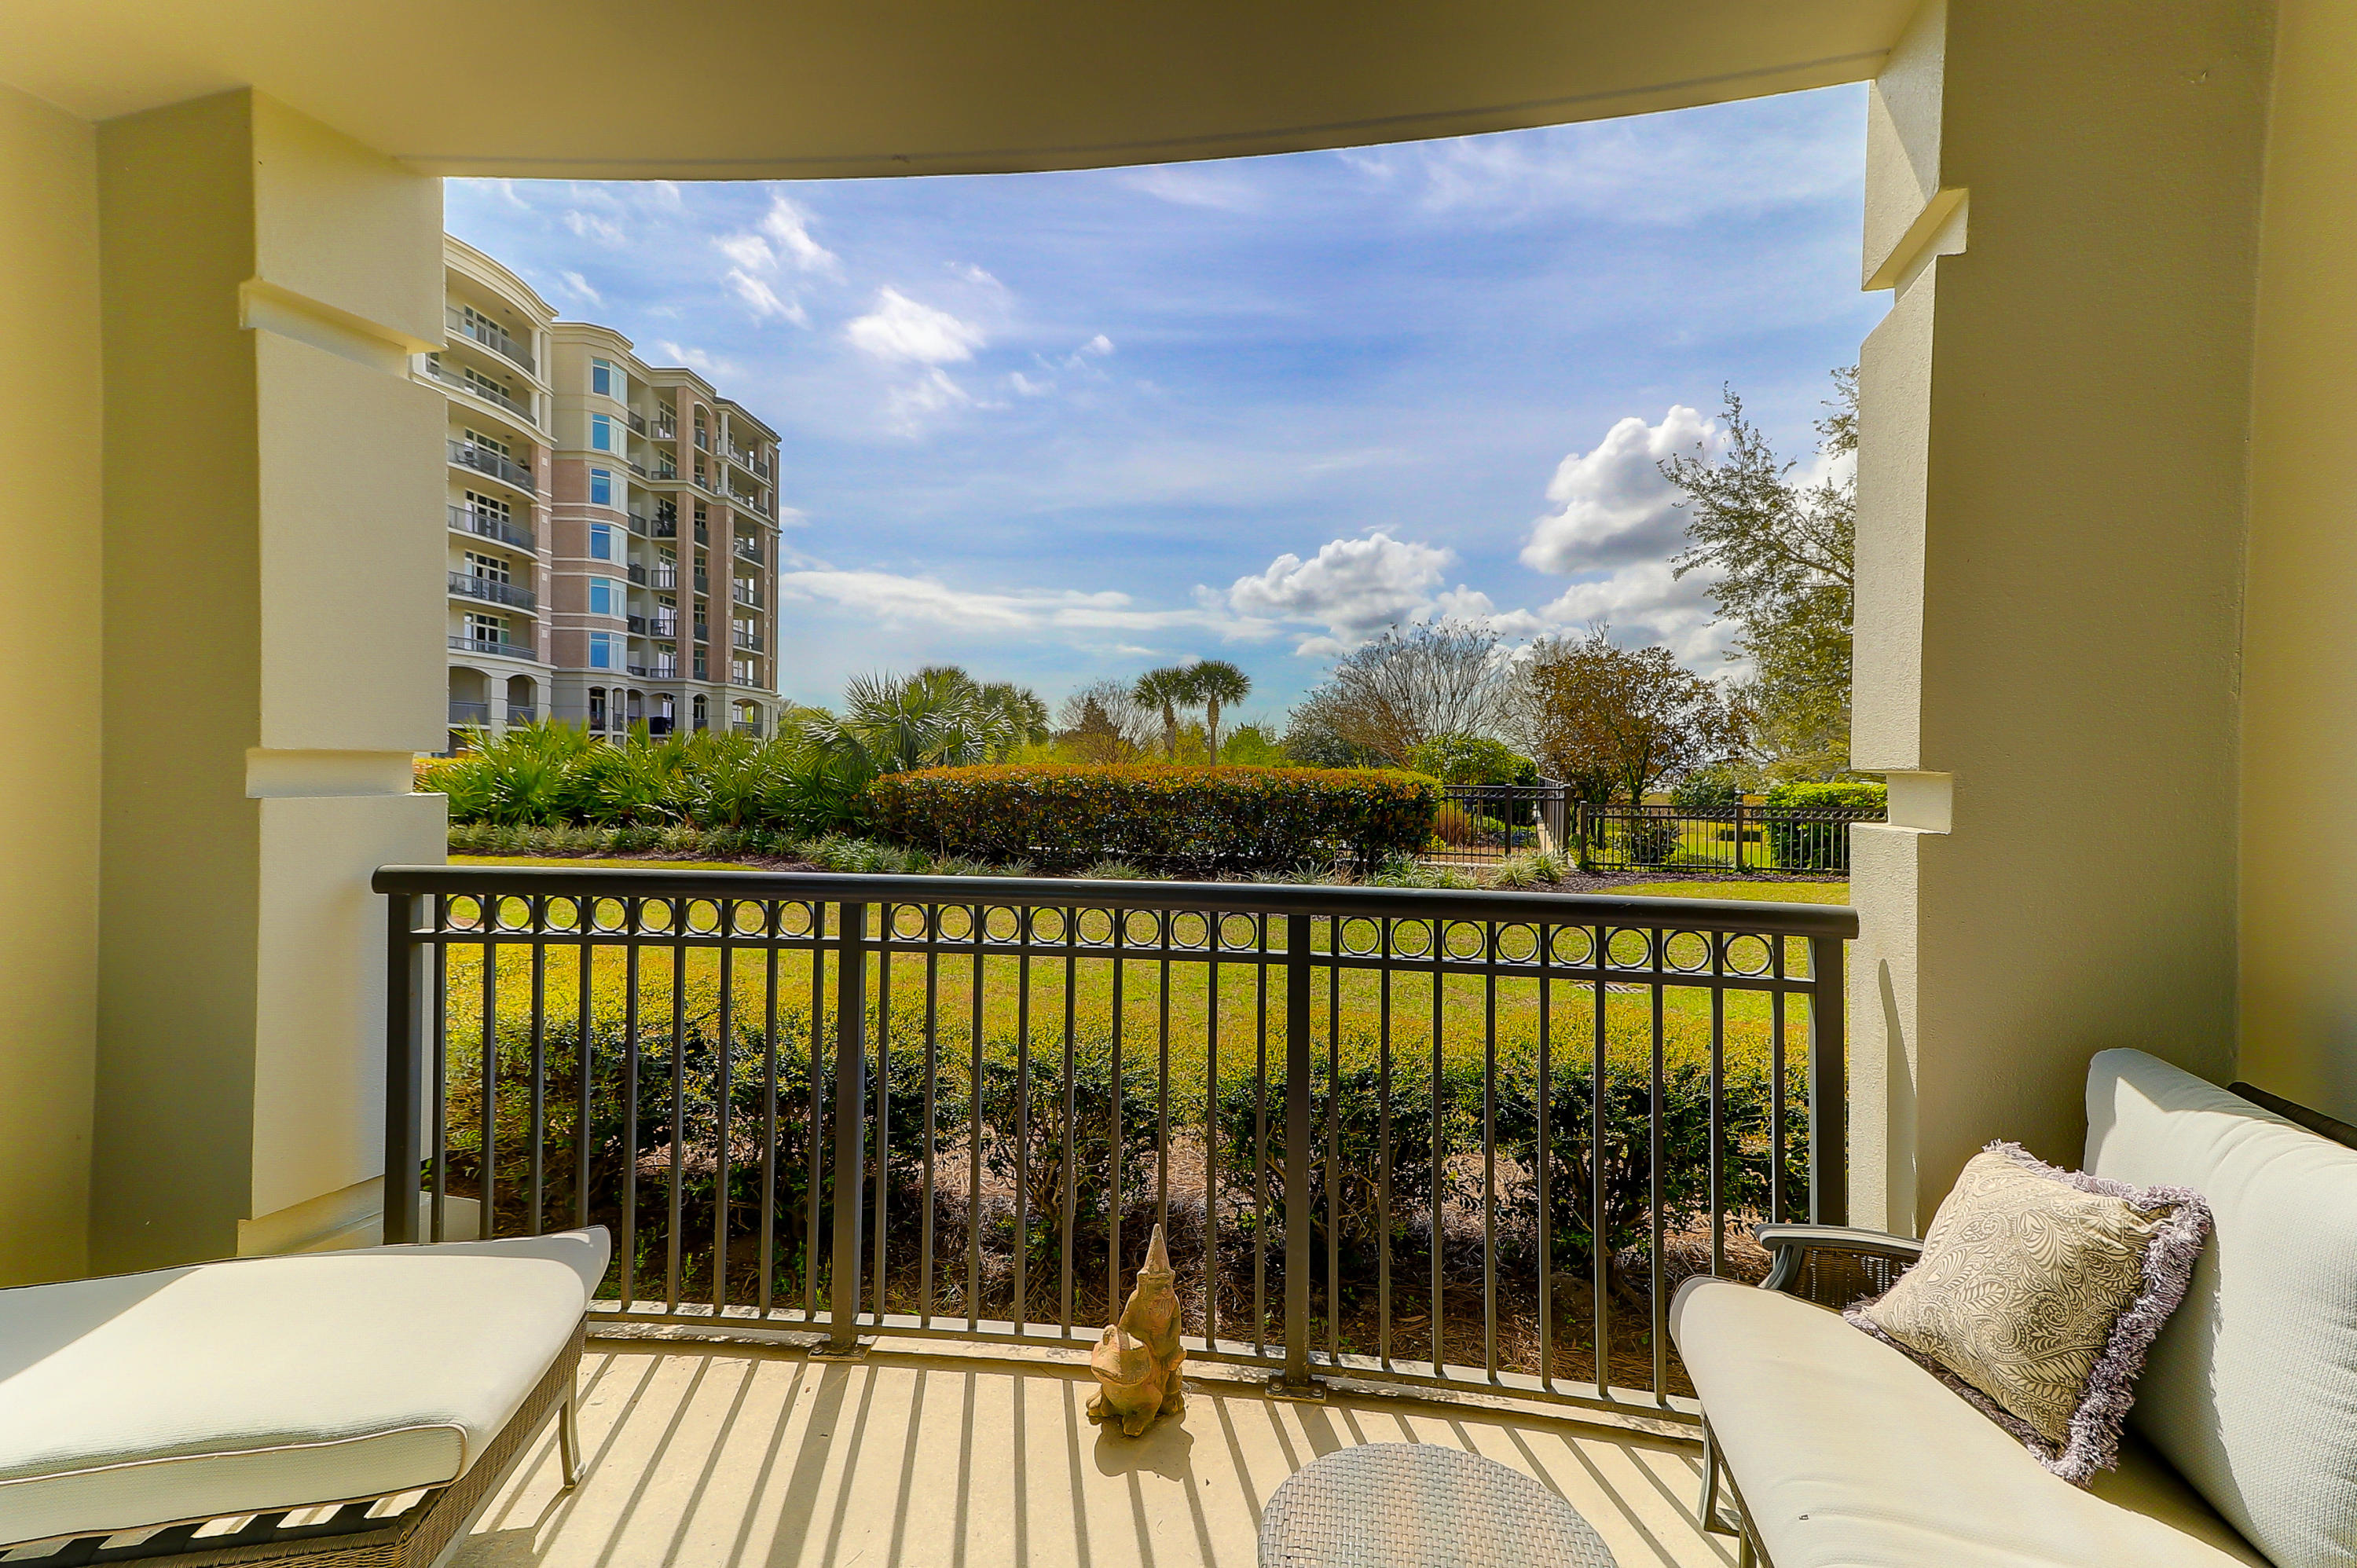 Renaissance On Chas Harbor Homes For Sale - 113 Plaza, Mount Pleasant, SC - 4